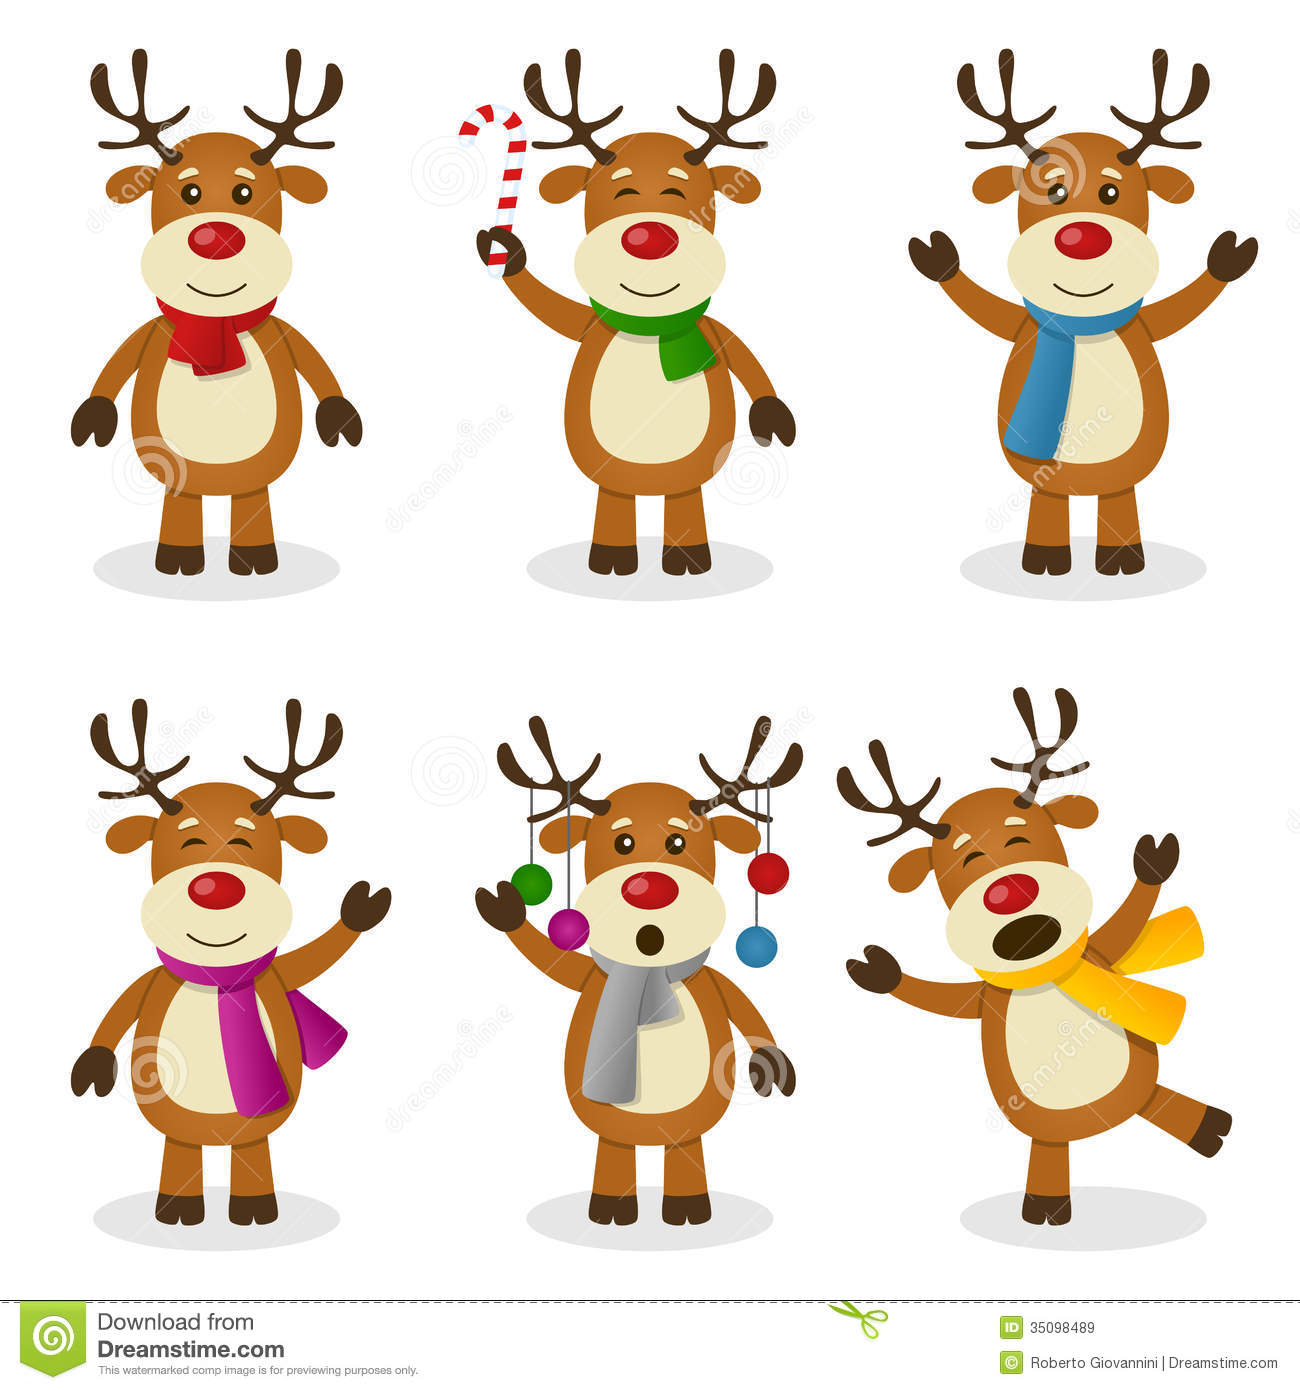 Animated Reindeer Clipart .